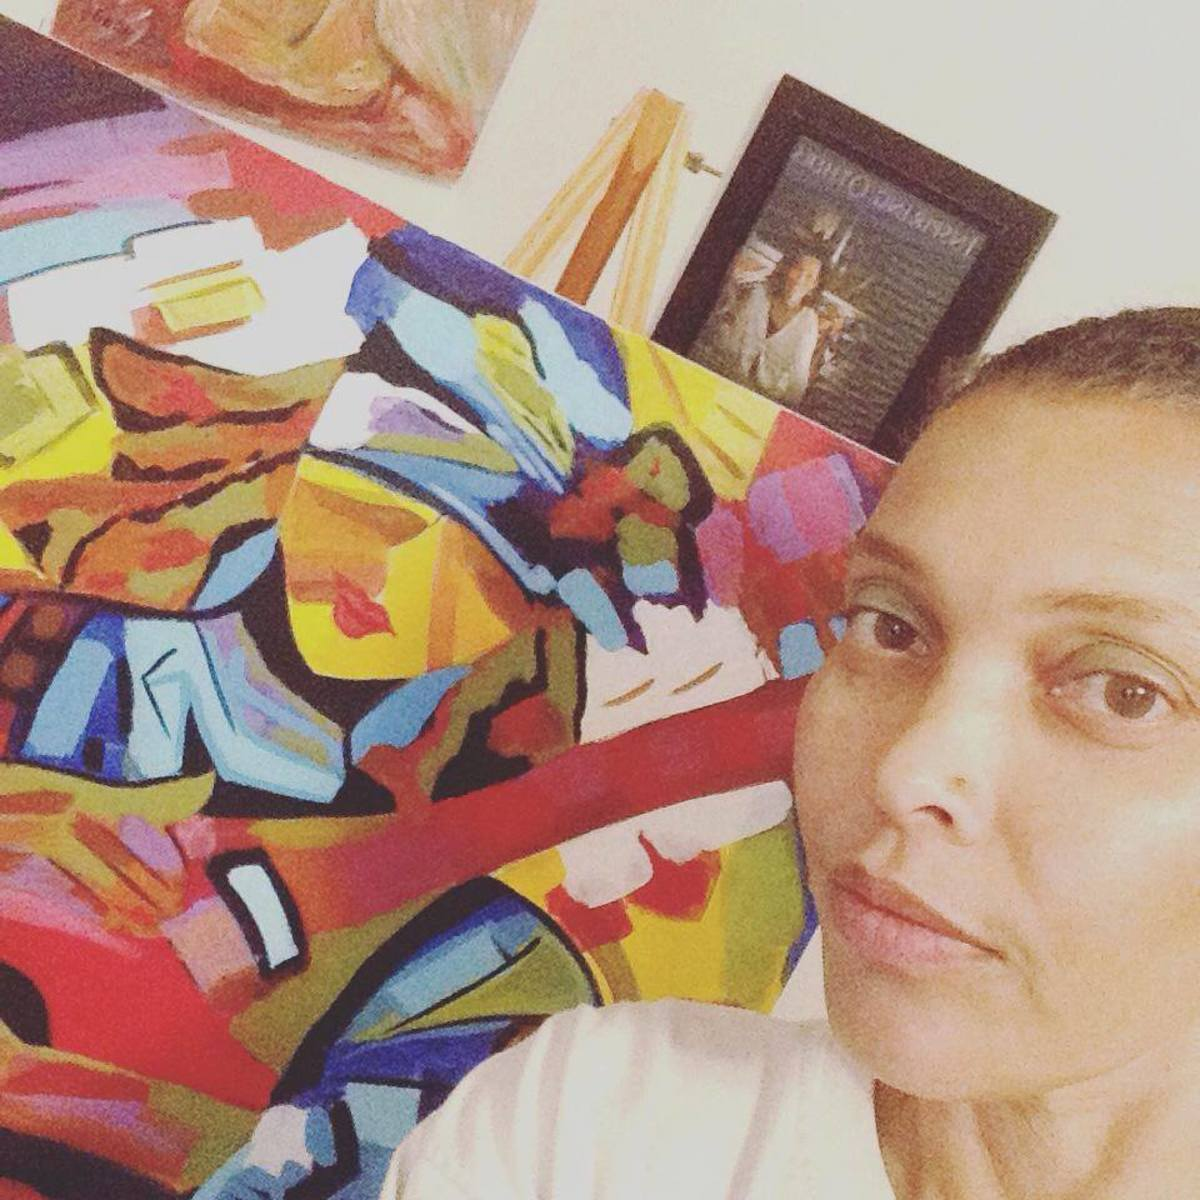 how-i-use-the-creative-arts-to-deal-with-lupus-and-chronic-illness